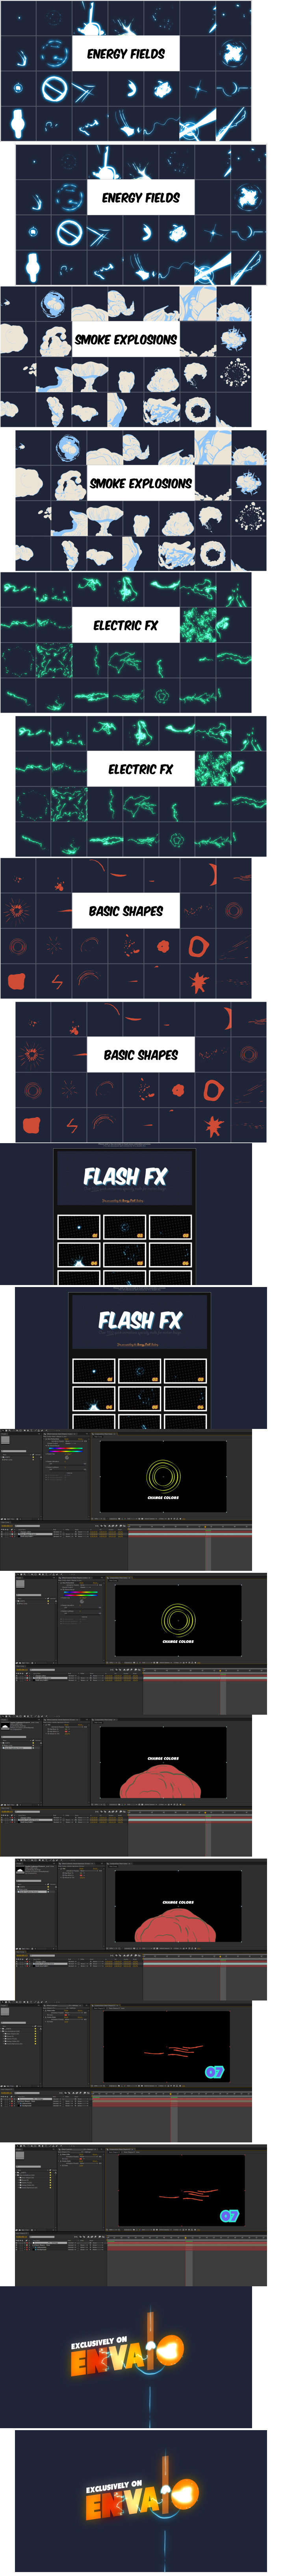 videohive_flash_fx_animation_pack_by_darkpulse_6527641